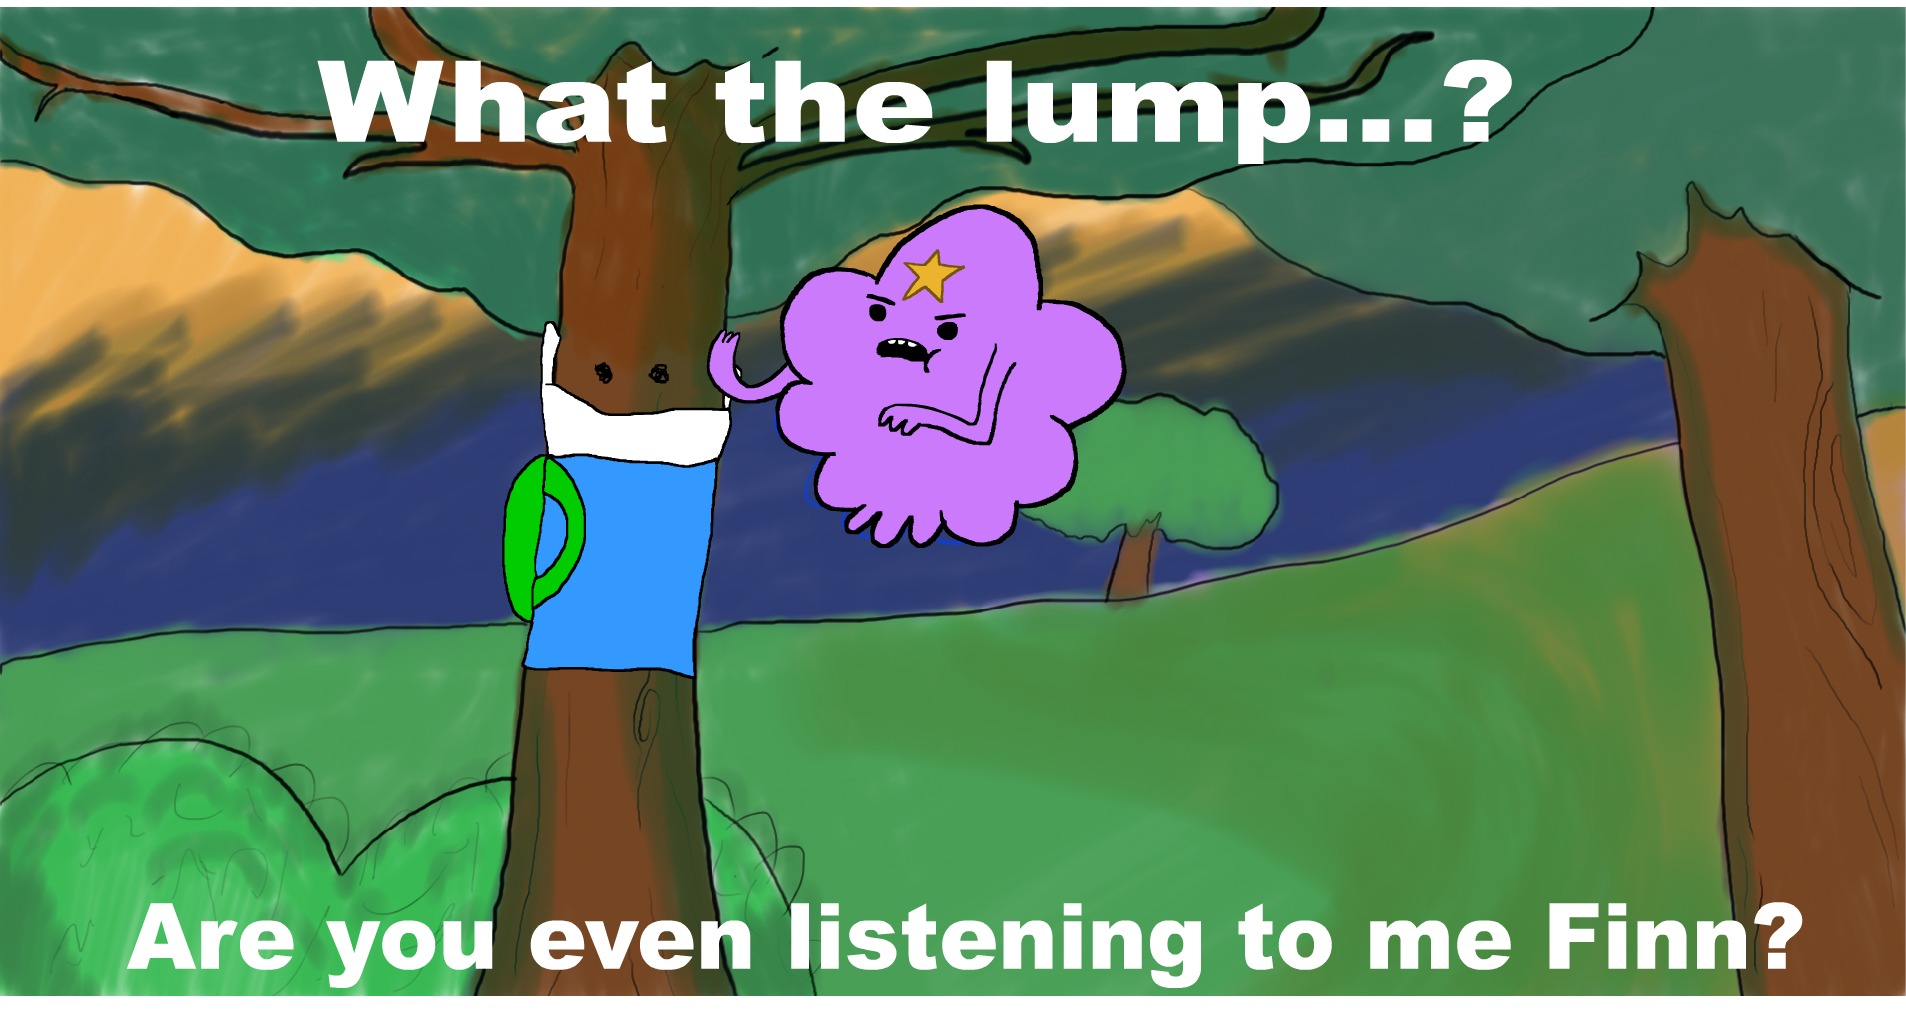 What the Lump...?